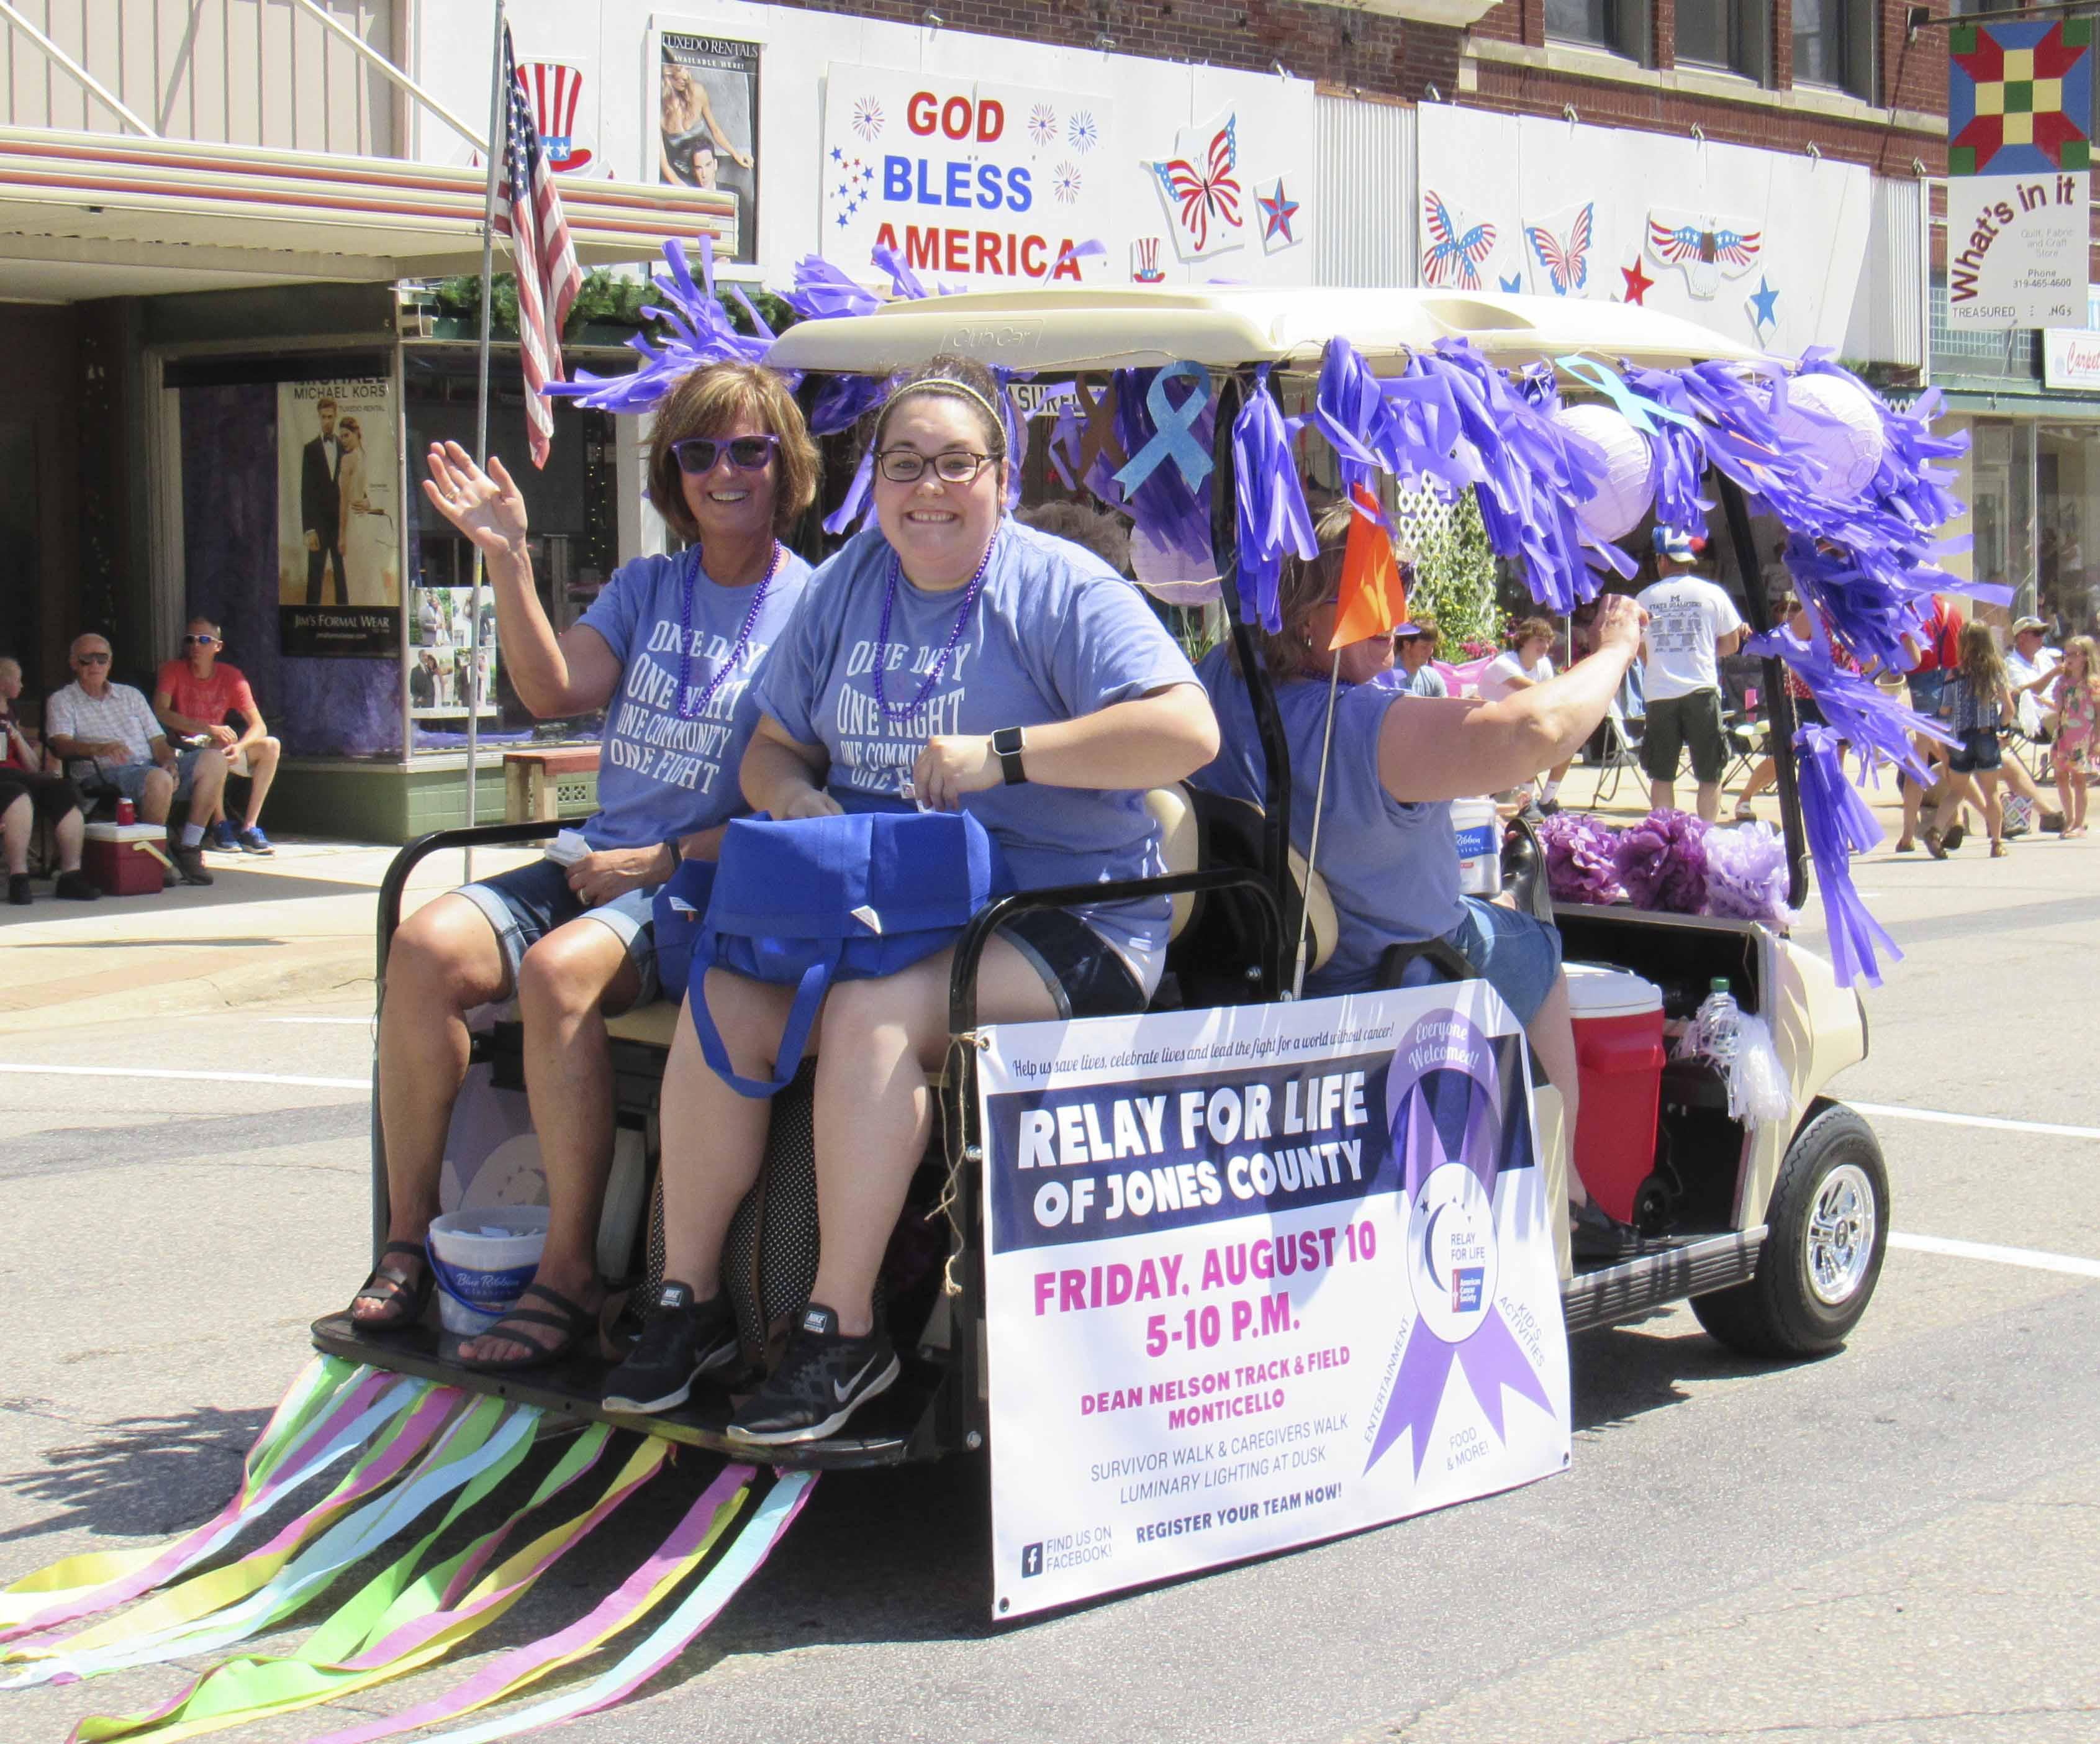 Helping to spread the word about the Aug. 10 Jones County Relay For Life in the parade were Sandy Moats and Abby Manternach. Not pictured were Kathy Bone and Mary Yanda.